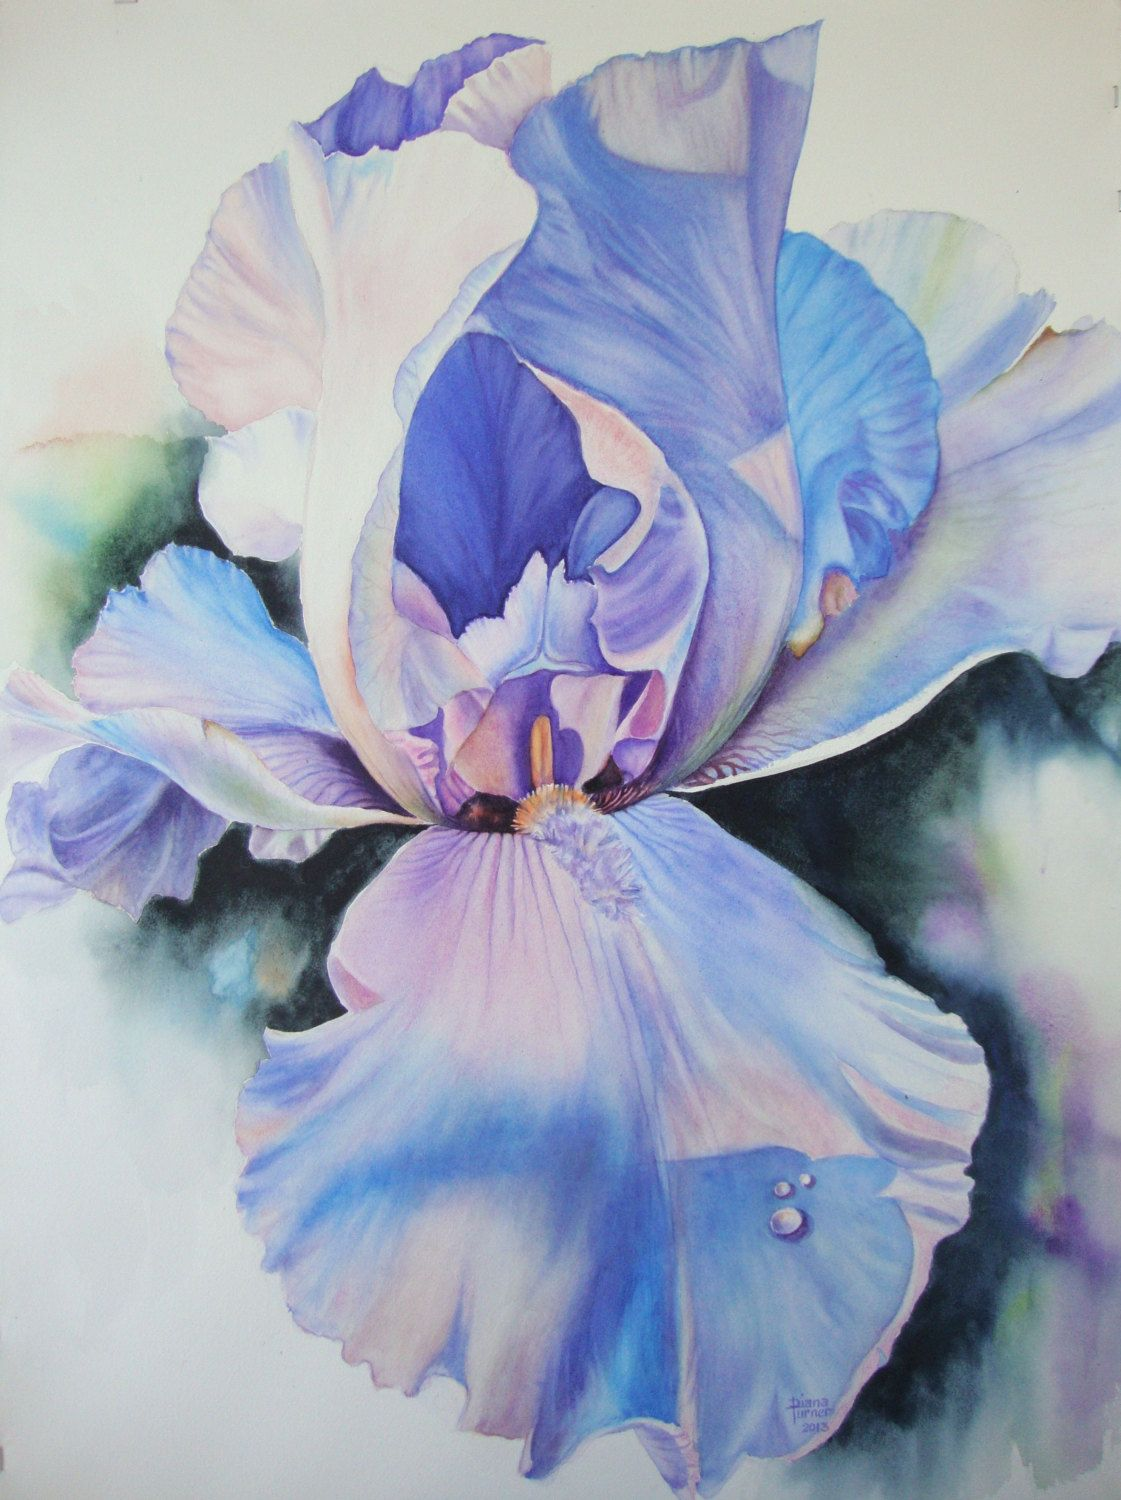 Iris original painting watercolor painting original watercolor iris watercolor painting original limited edition giclee print iris flower art iris by diana m turner 11 x 14 by dianamturnerart on etsy izmirmasajfo